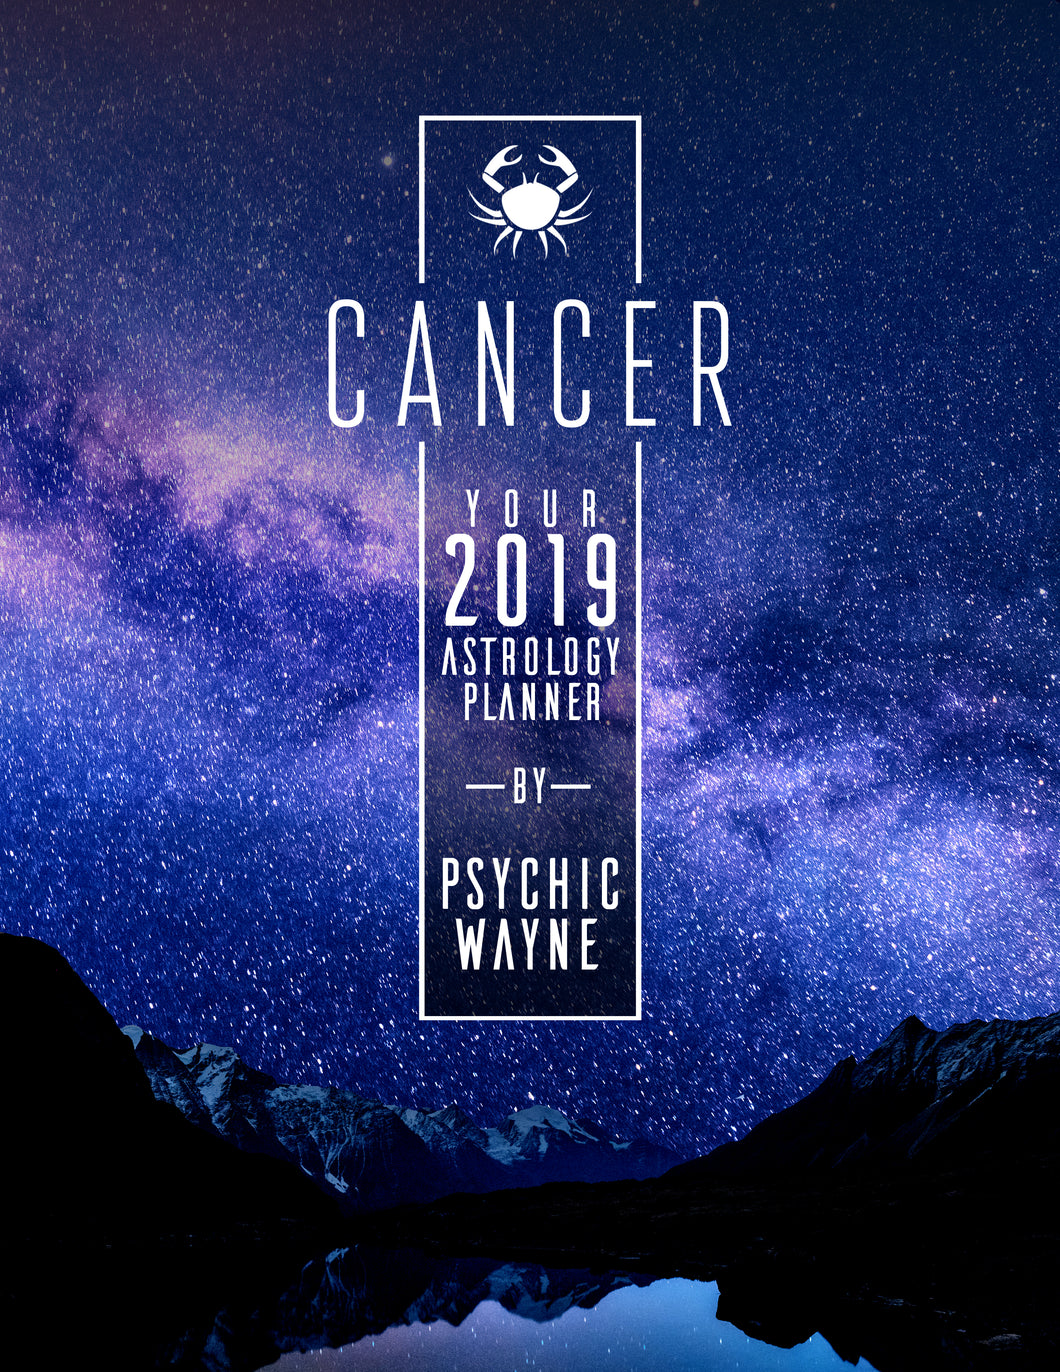 Cancer 2019 Astrology Planner